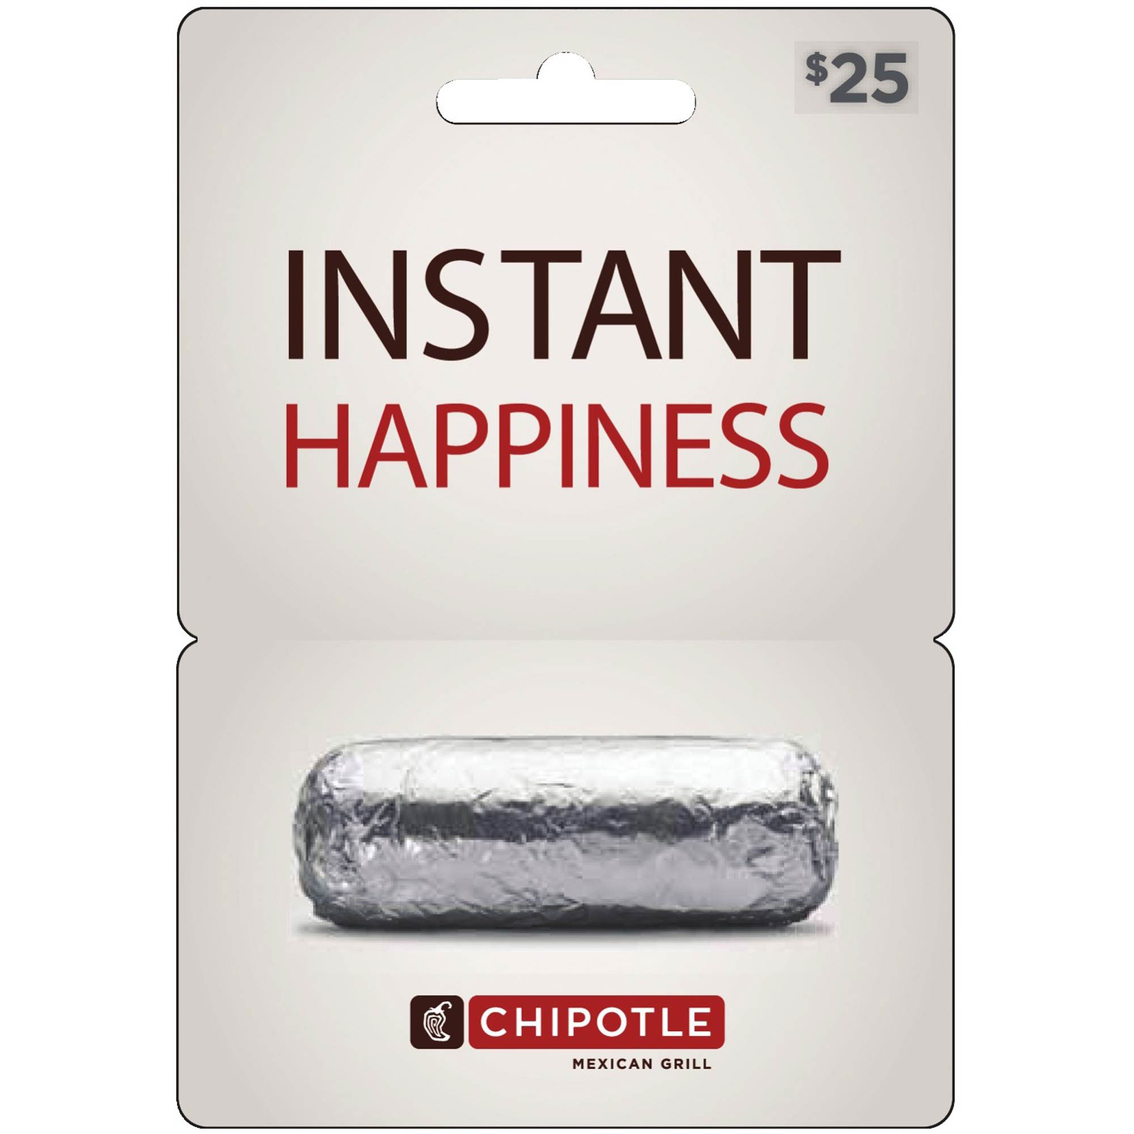 Chipotle Corporate: ; Mailing Address. As is the case with the phone number, you'll have to contact the corporate office for customer service by mail. Chipotle prefers email customer service whenever possible, so this address is the physical address for the corporate building.2/5(69).